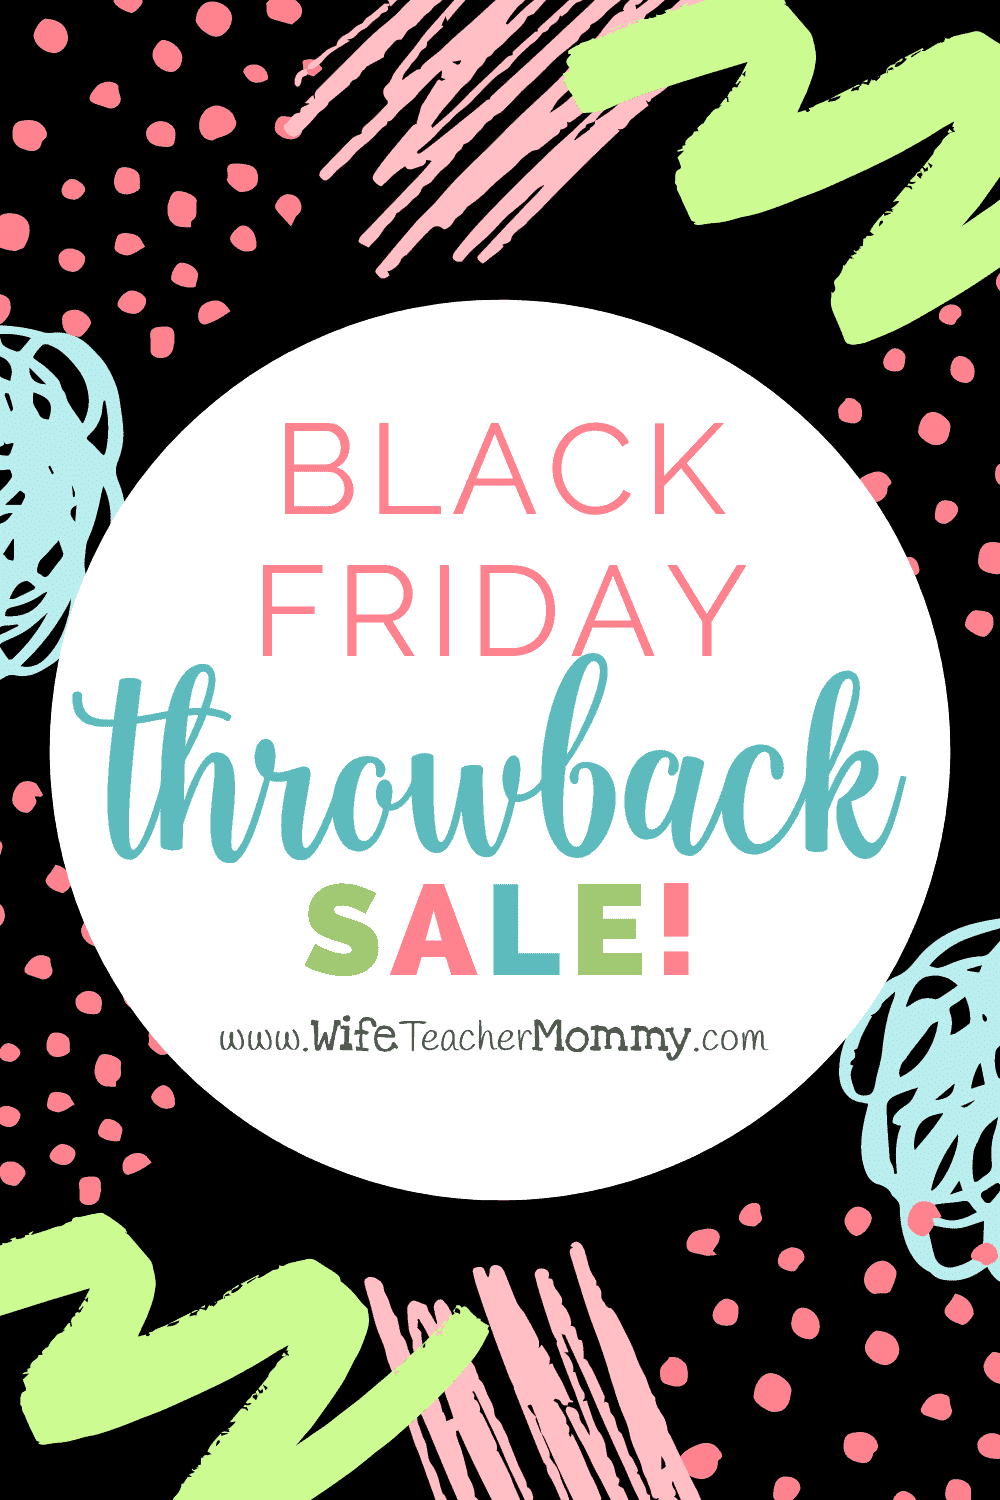 Teacher black friday deals cyber monday for educators. Teaching resources, sub plans, research units, holidays around the world, homeschool lessons and more are on sale during our Black Friday event!